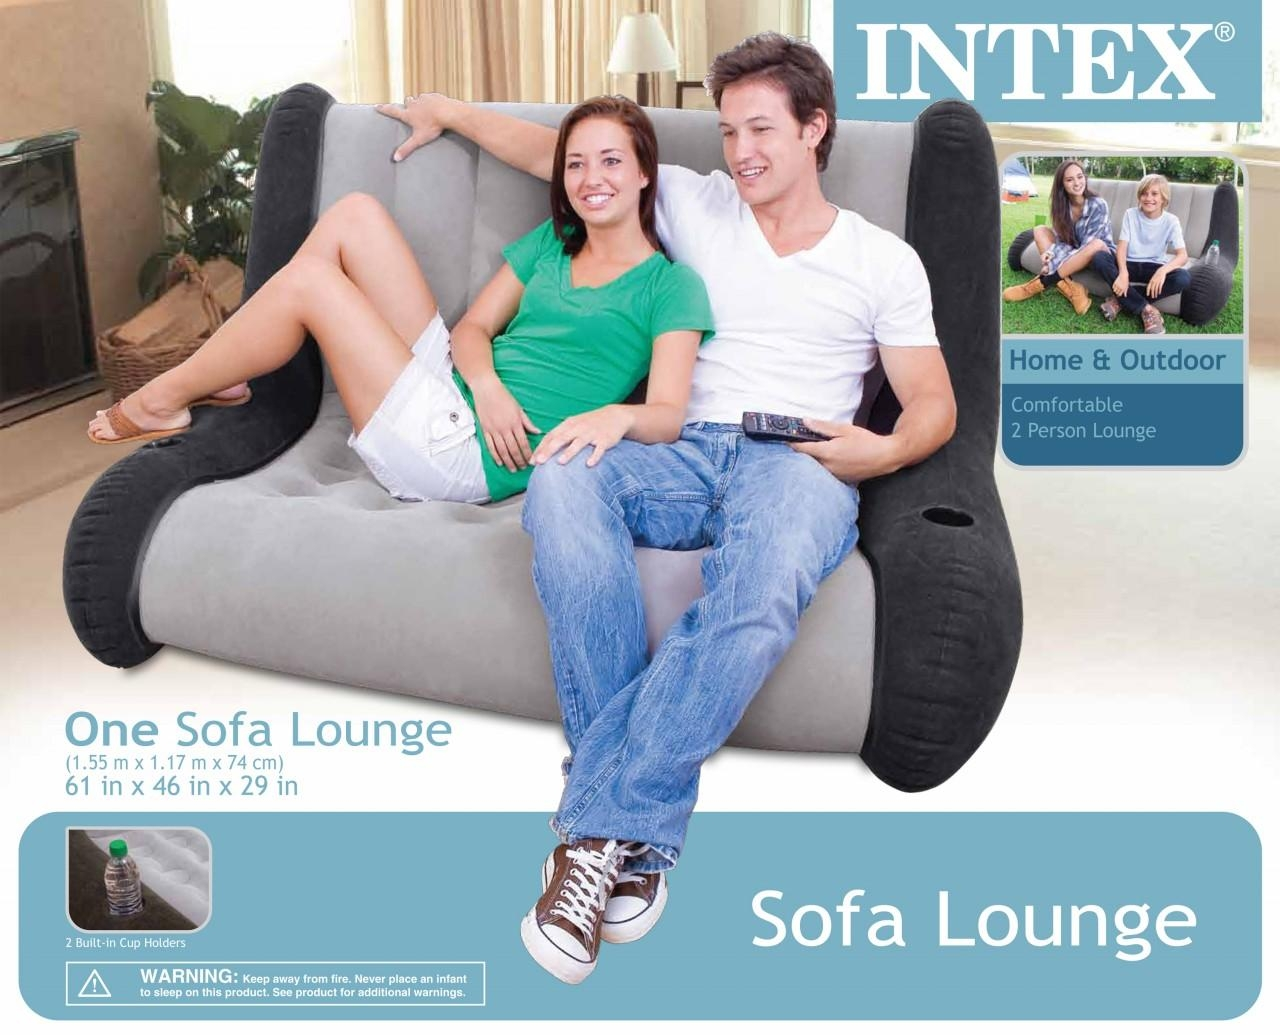 Intex Inflatable Sofa Lounge Intended For Intex Inflatable Sofas (Image 13 of 20)